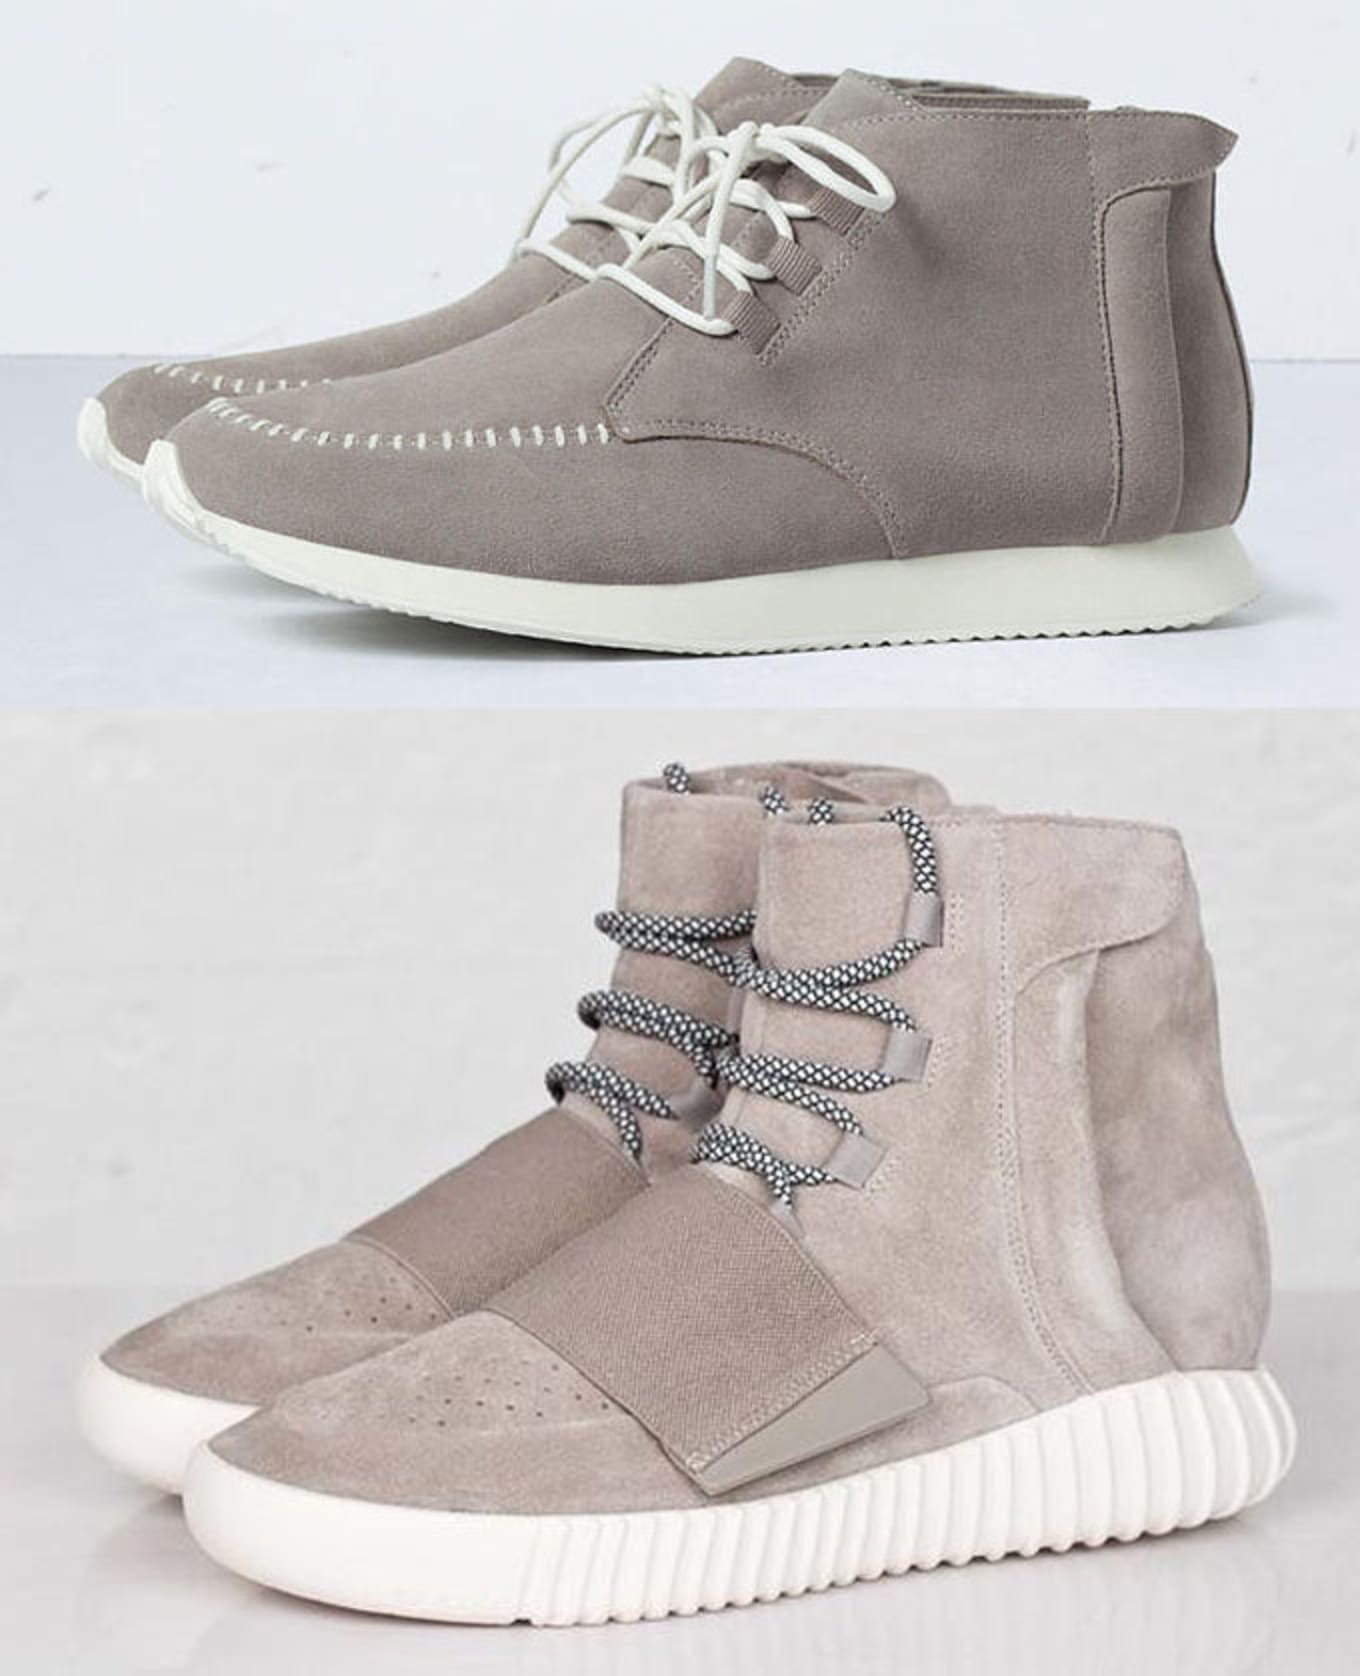 148538a2b710 adidas Yeezy 750 Boost Resale Price   3